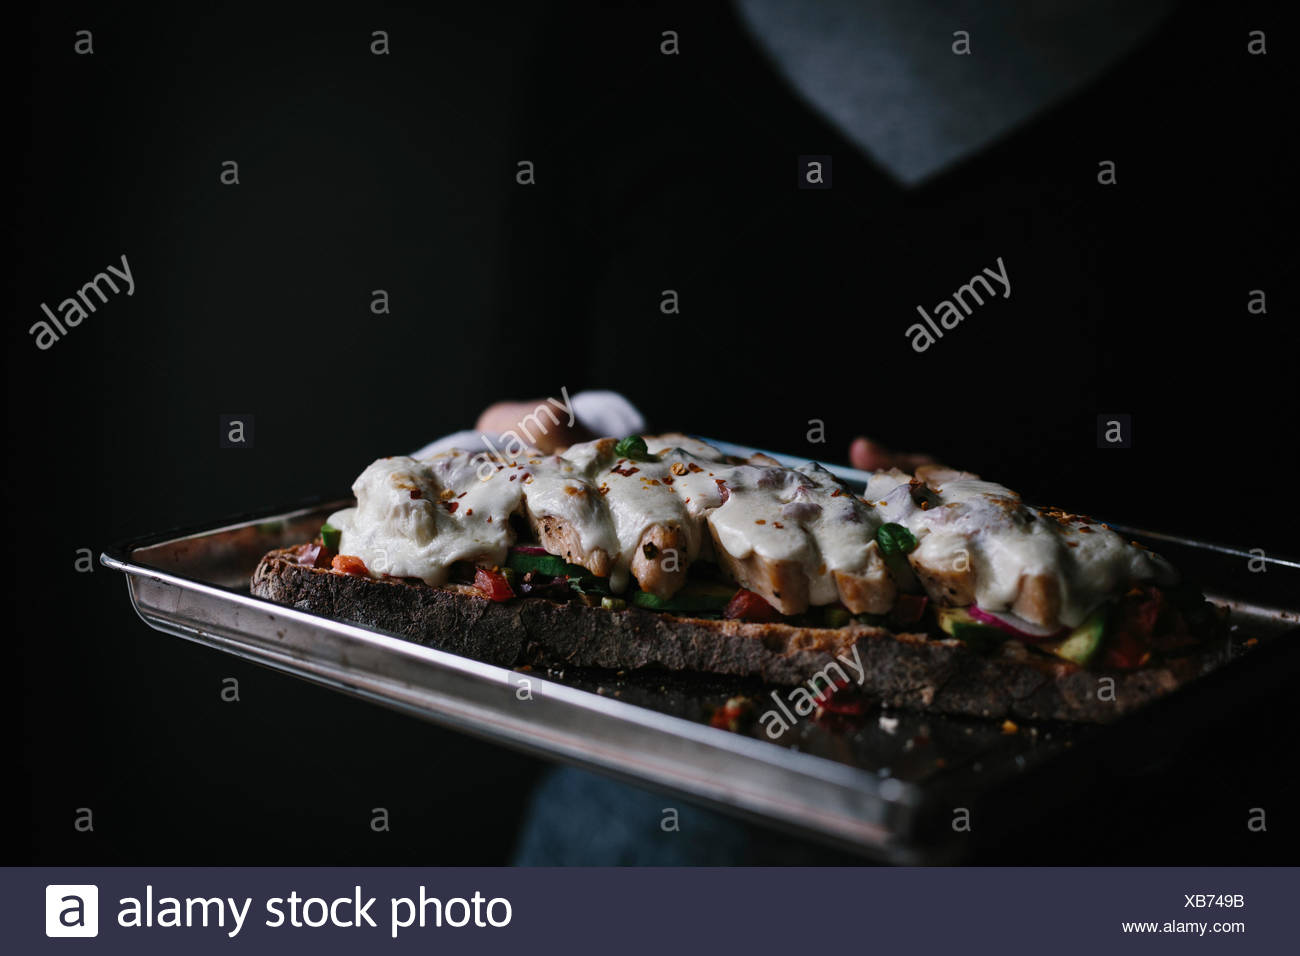 A woman is holding a chicken caprese open faced (tartine) sandwich that just came out of the oven. - Stock Image